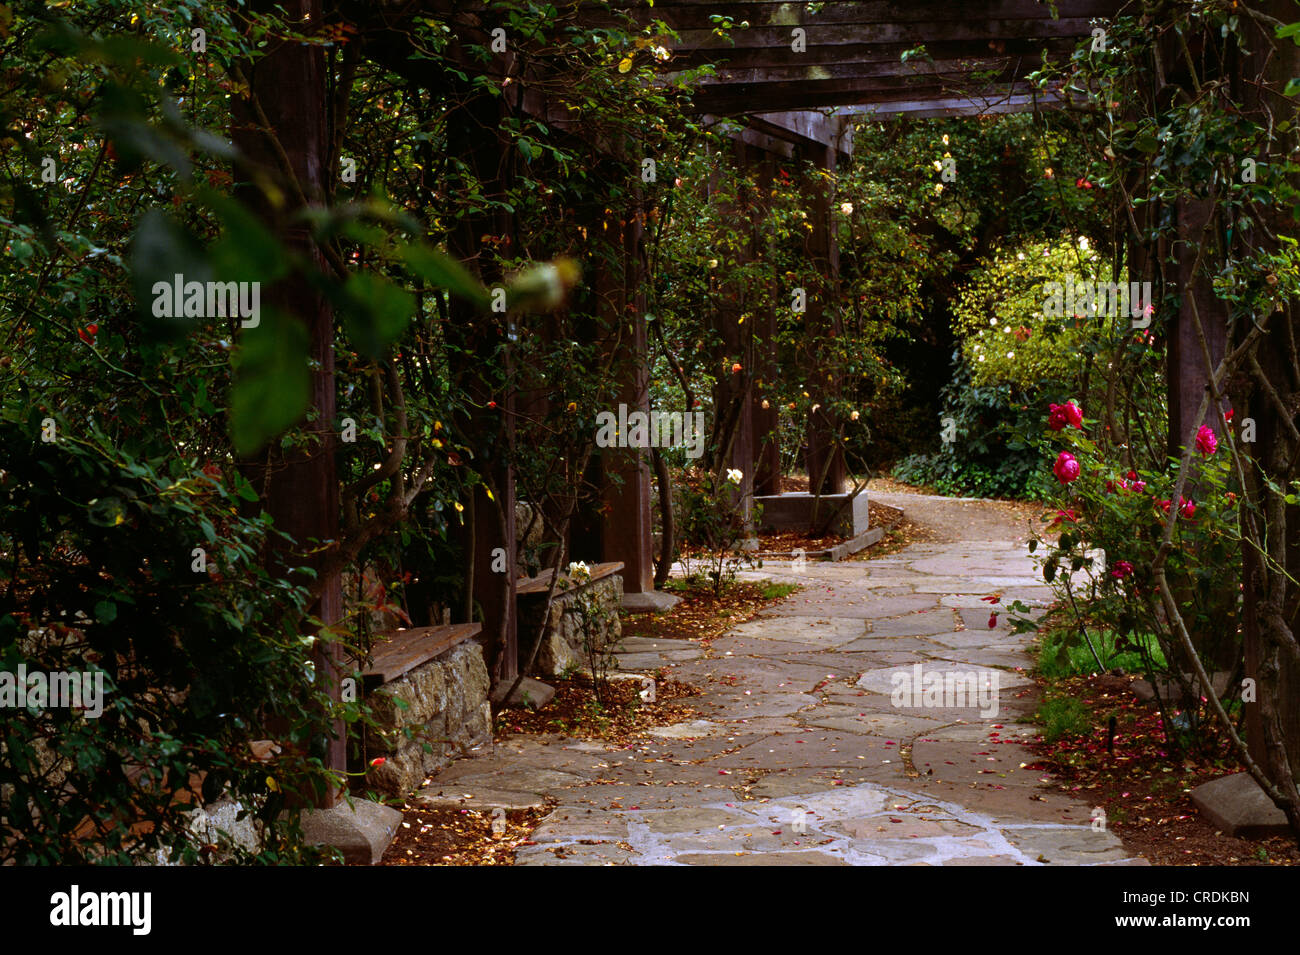 California Berkeley Garden Stock Photos & California Berkeley Garden ...